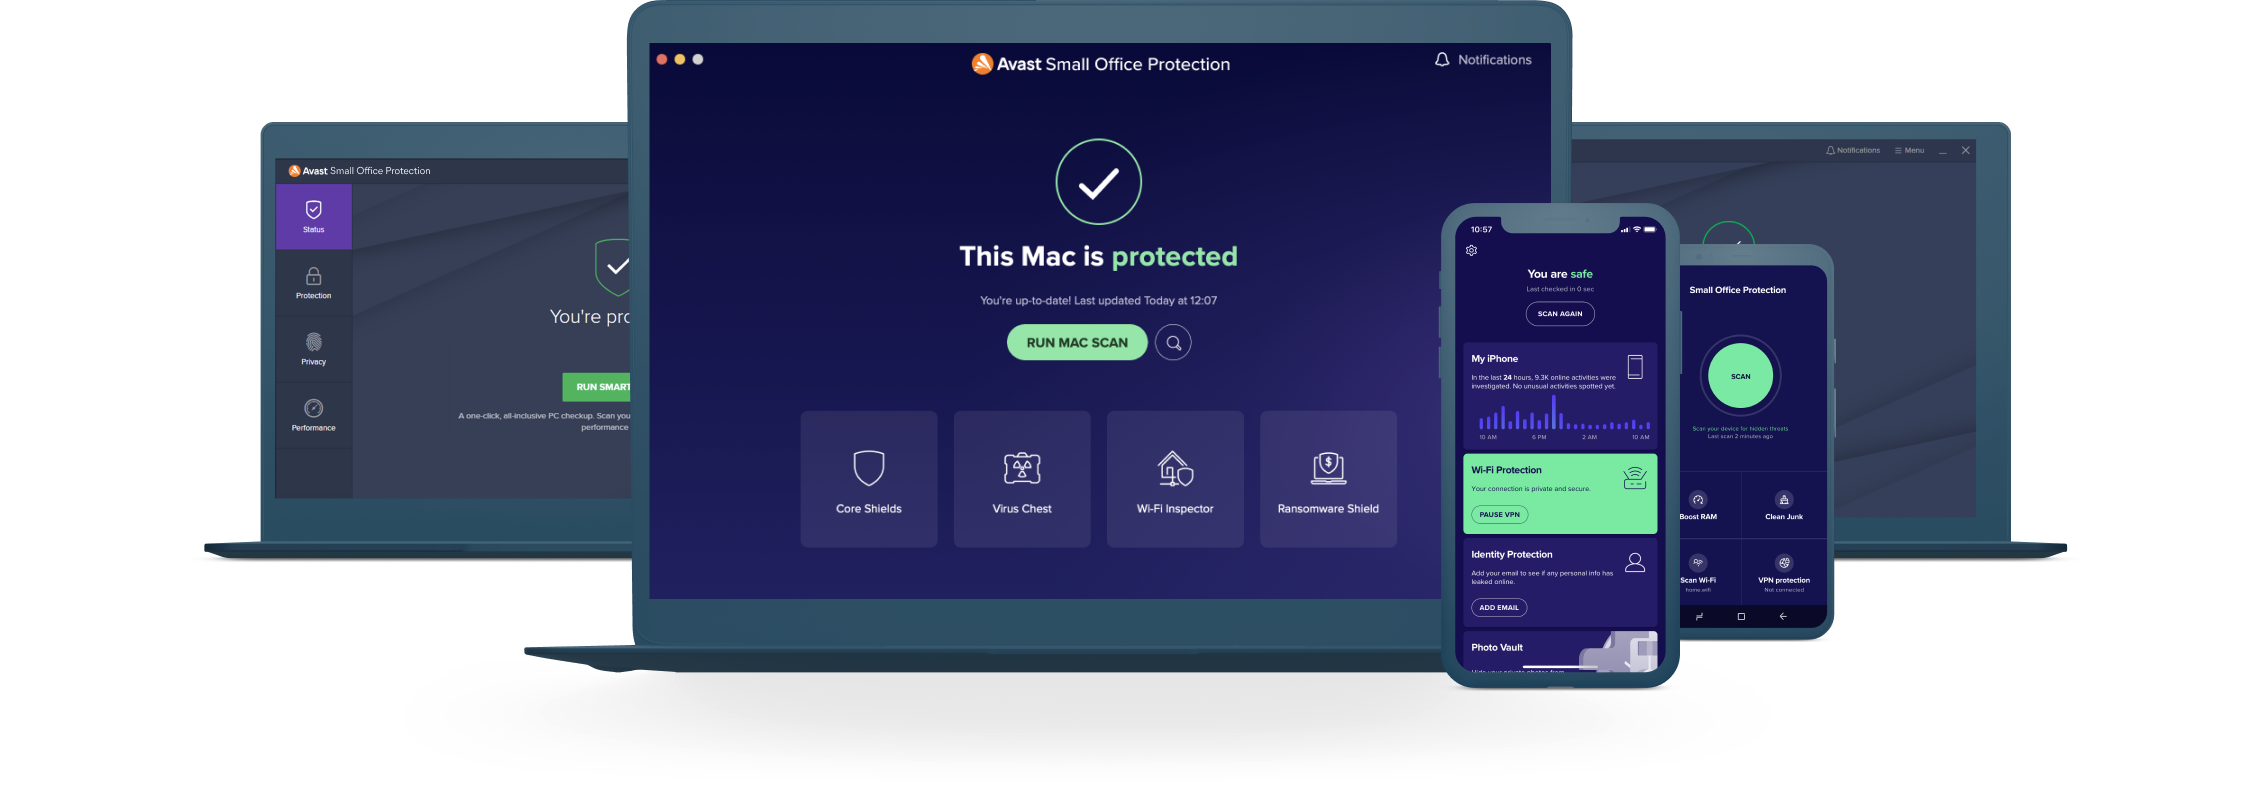 All-in-one security solution for your small business